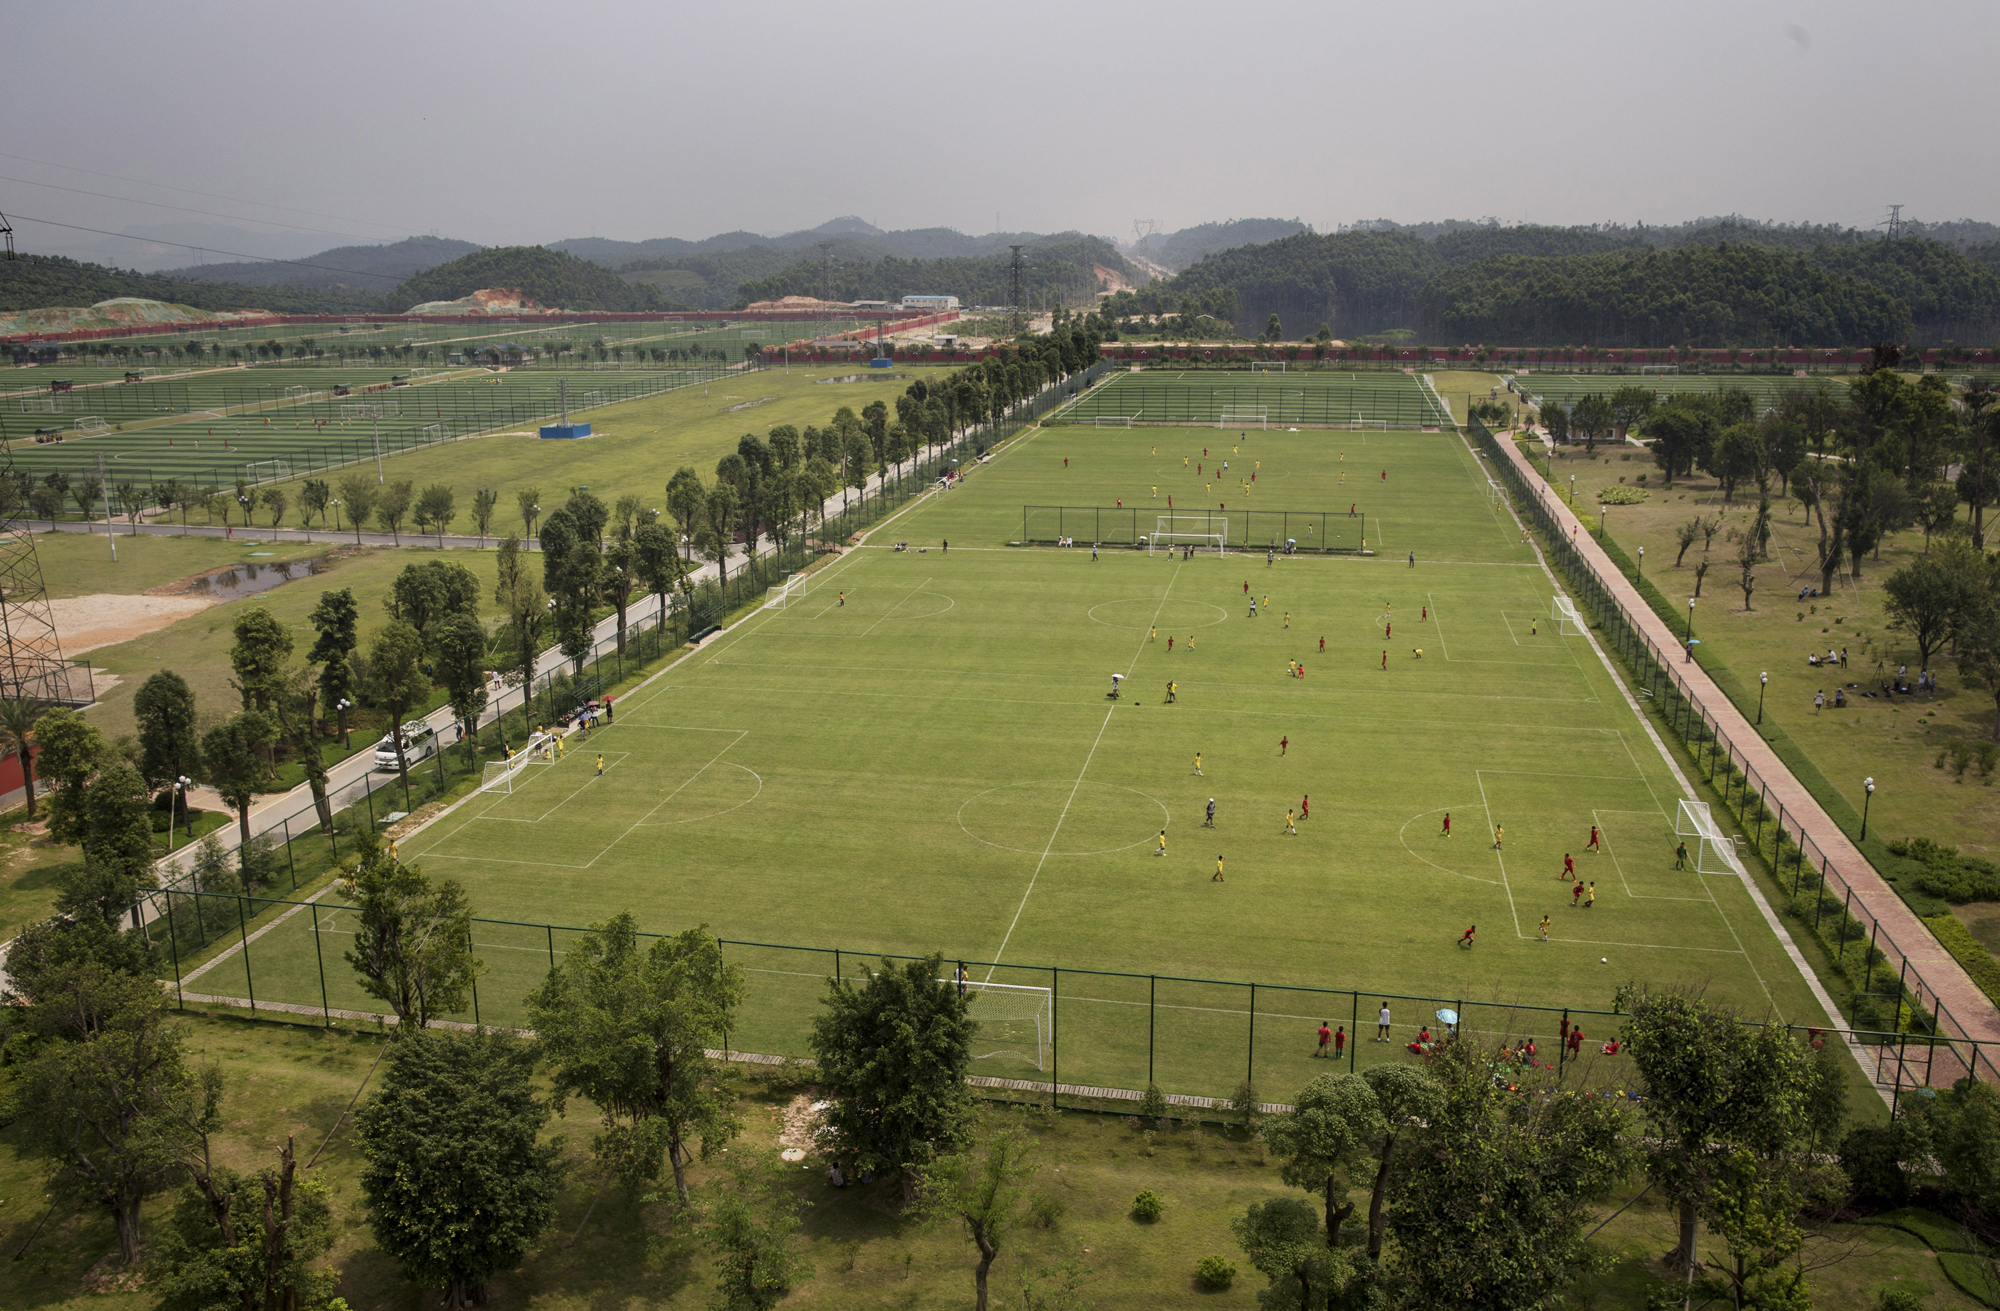 A view of some of the 50 soccer fields.